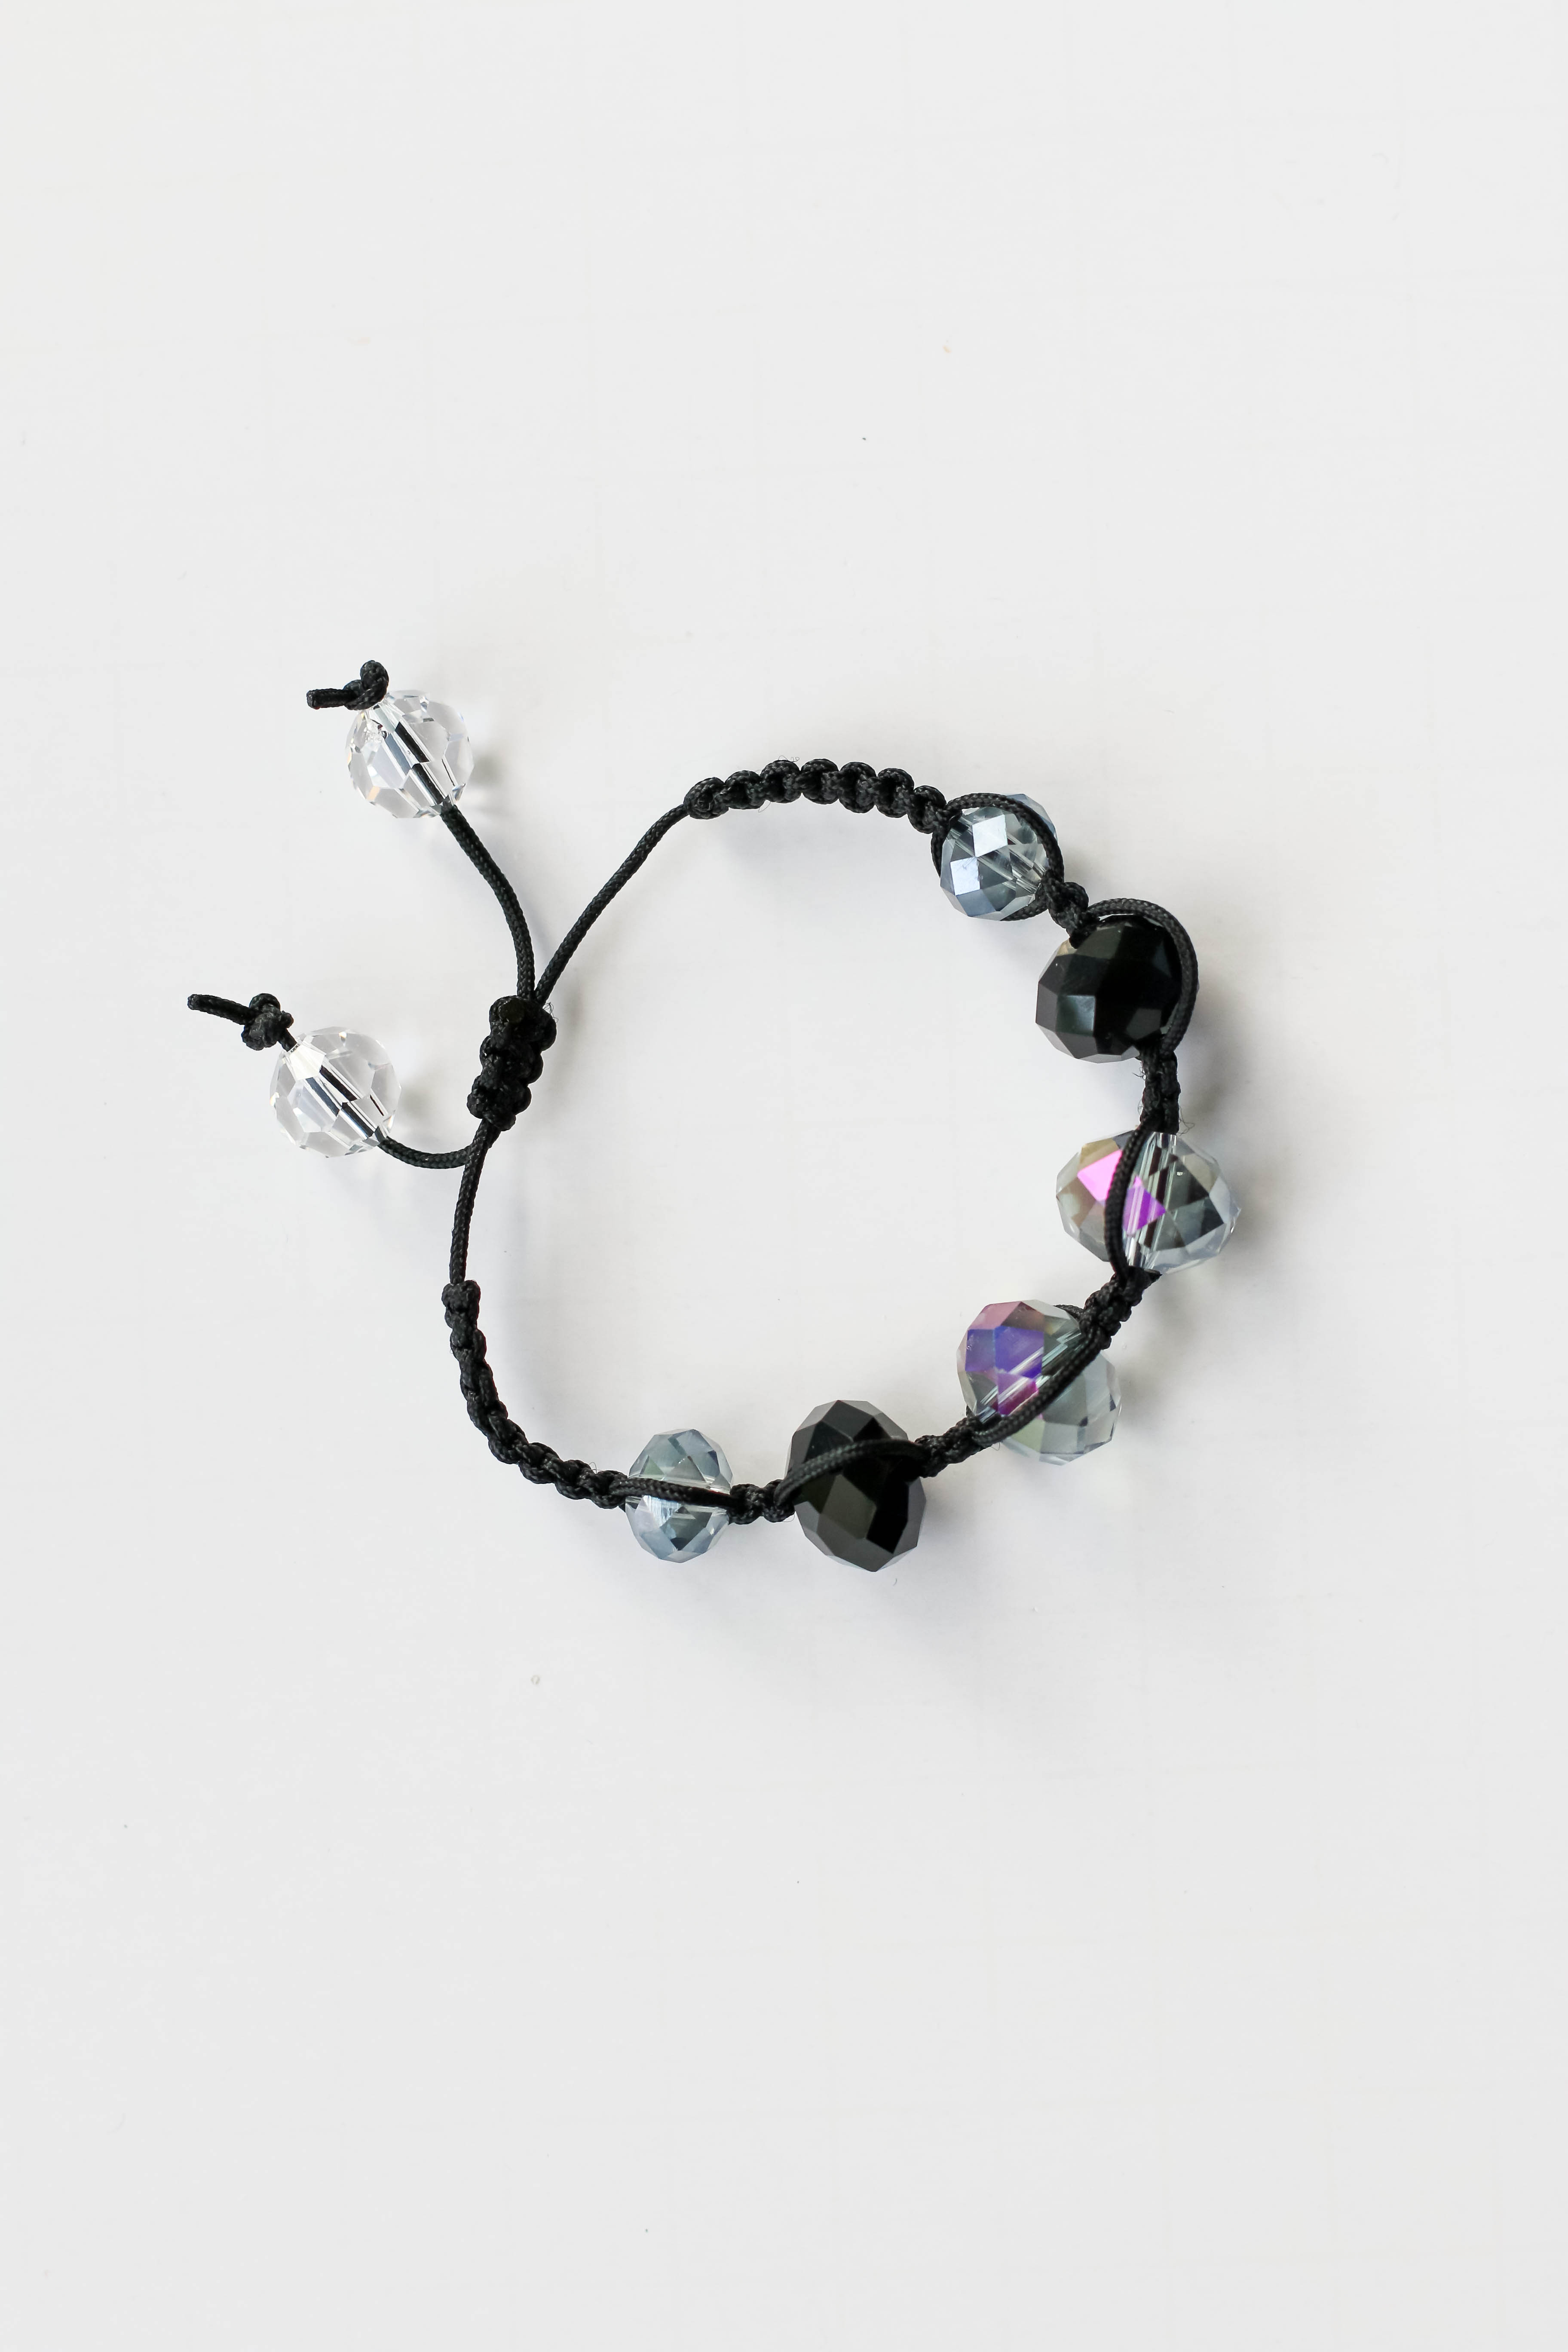 Shamballa bracelet - finished crystal bracelet